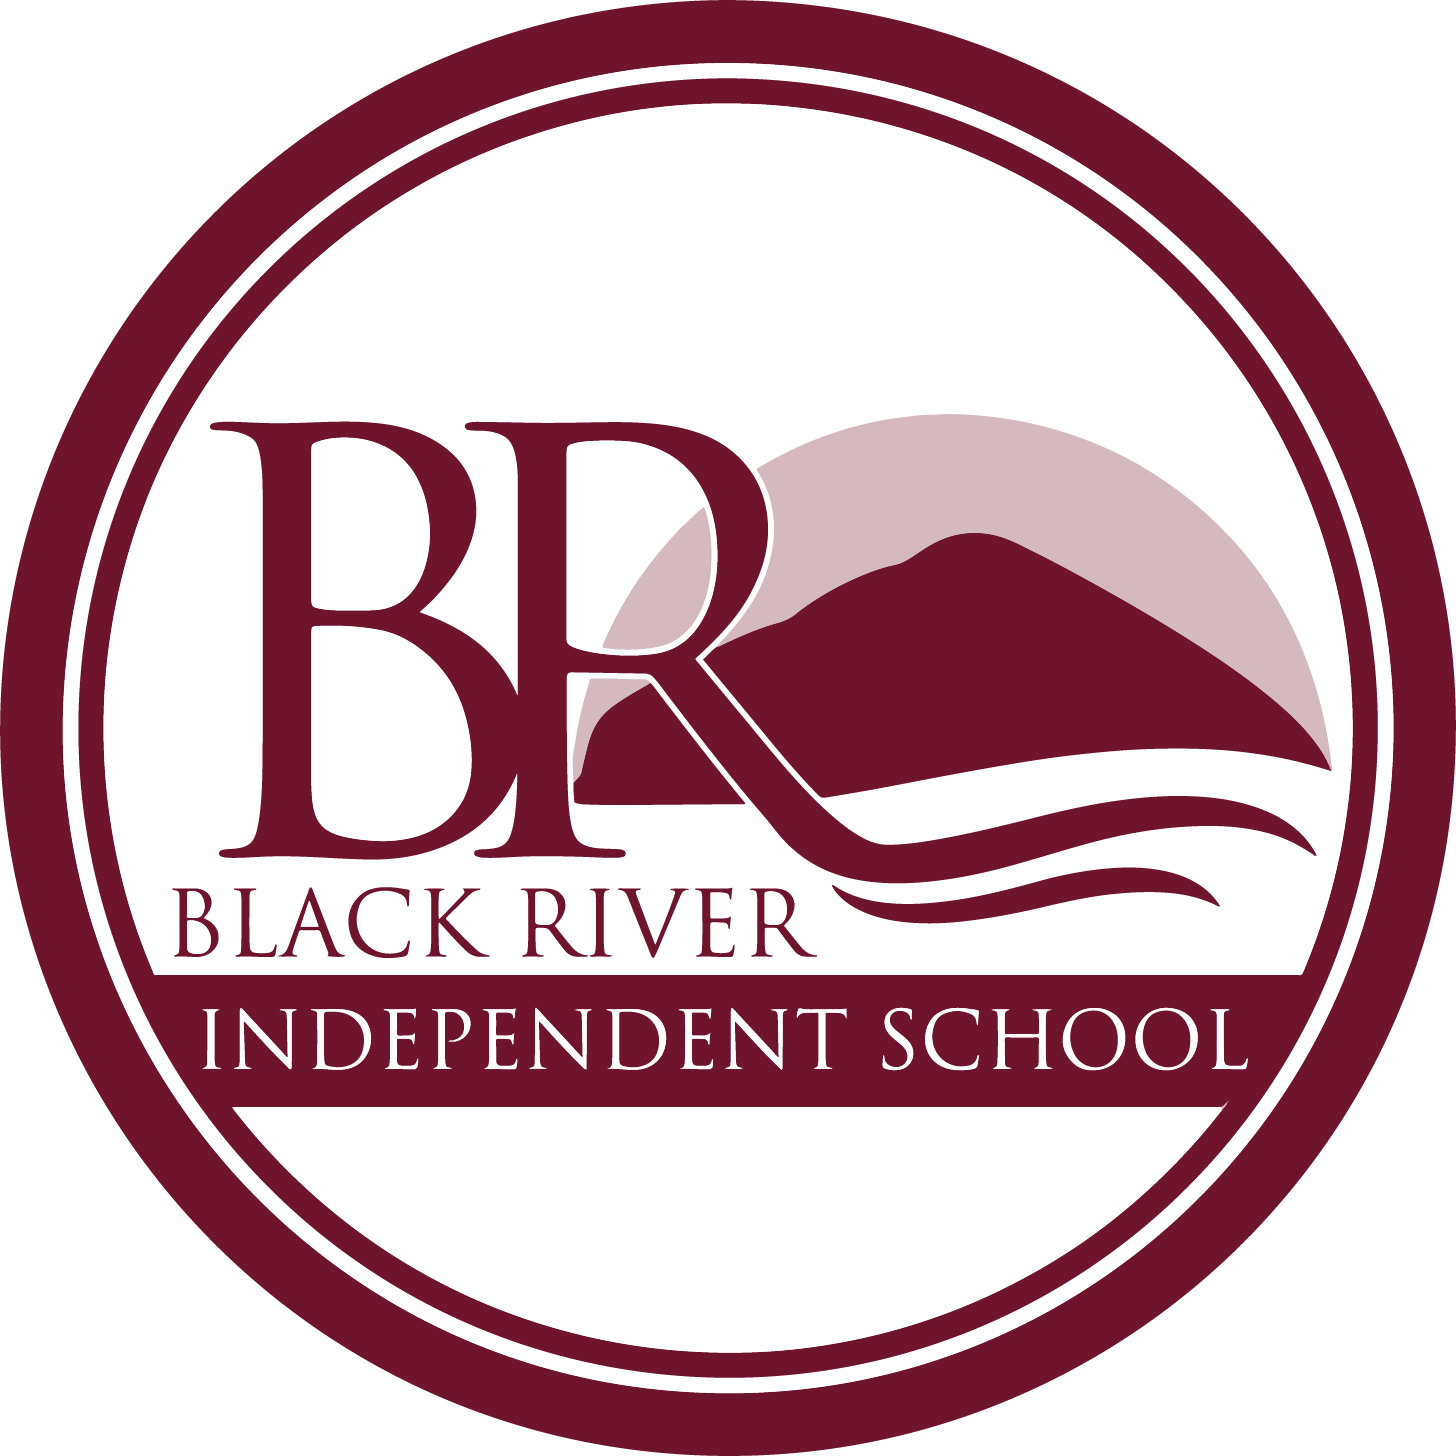 BLACK RIVER INDEPENDENT SCHOOL